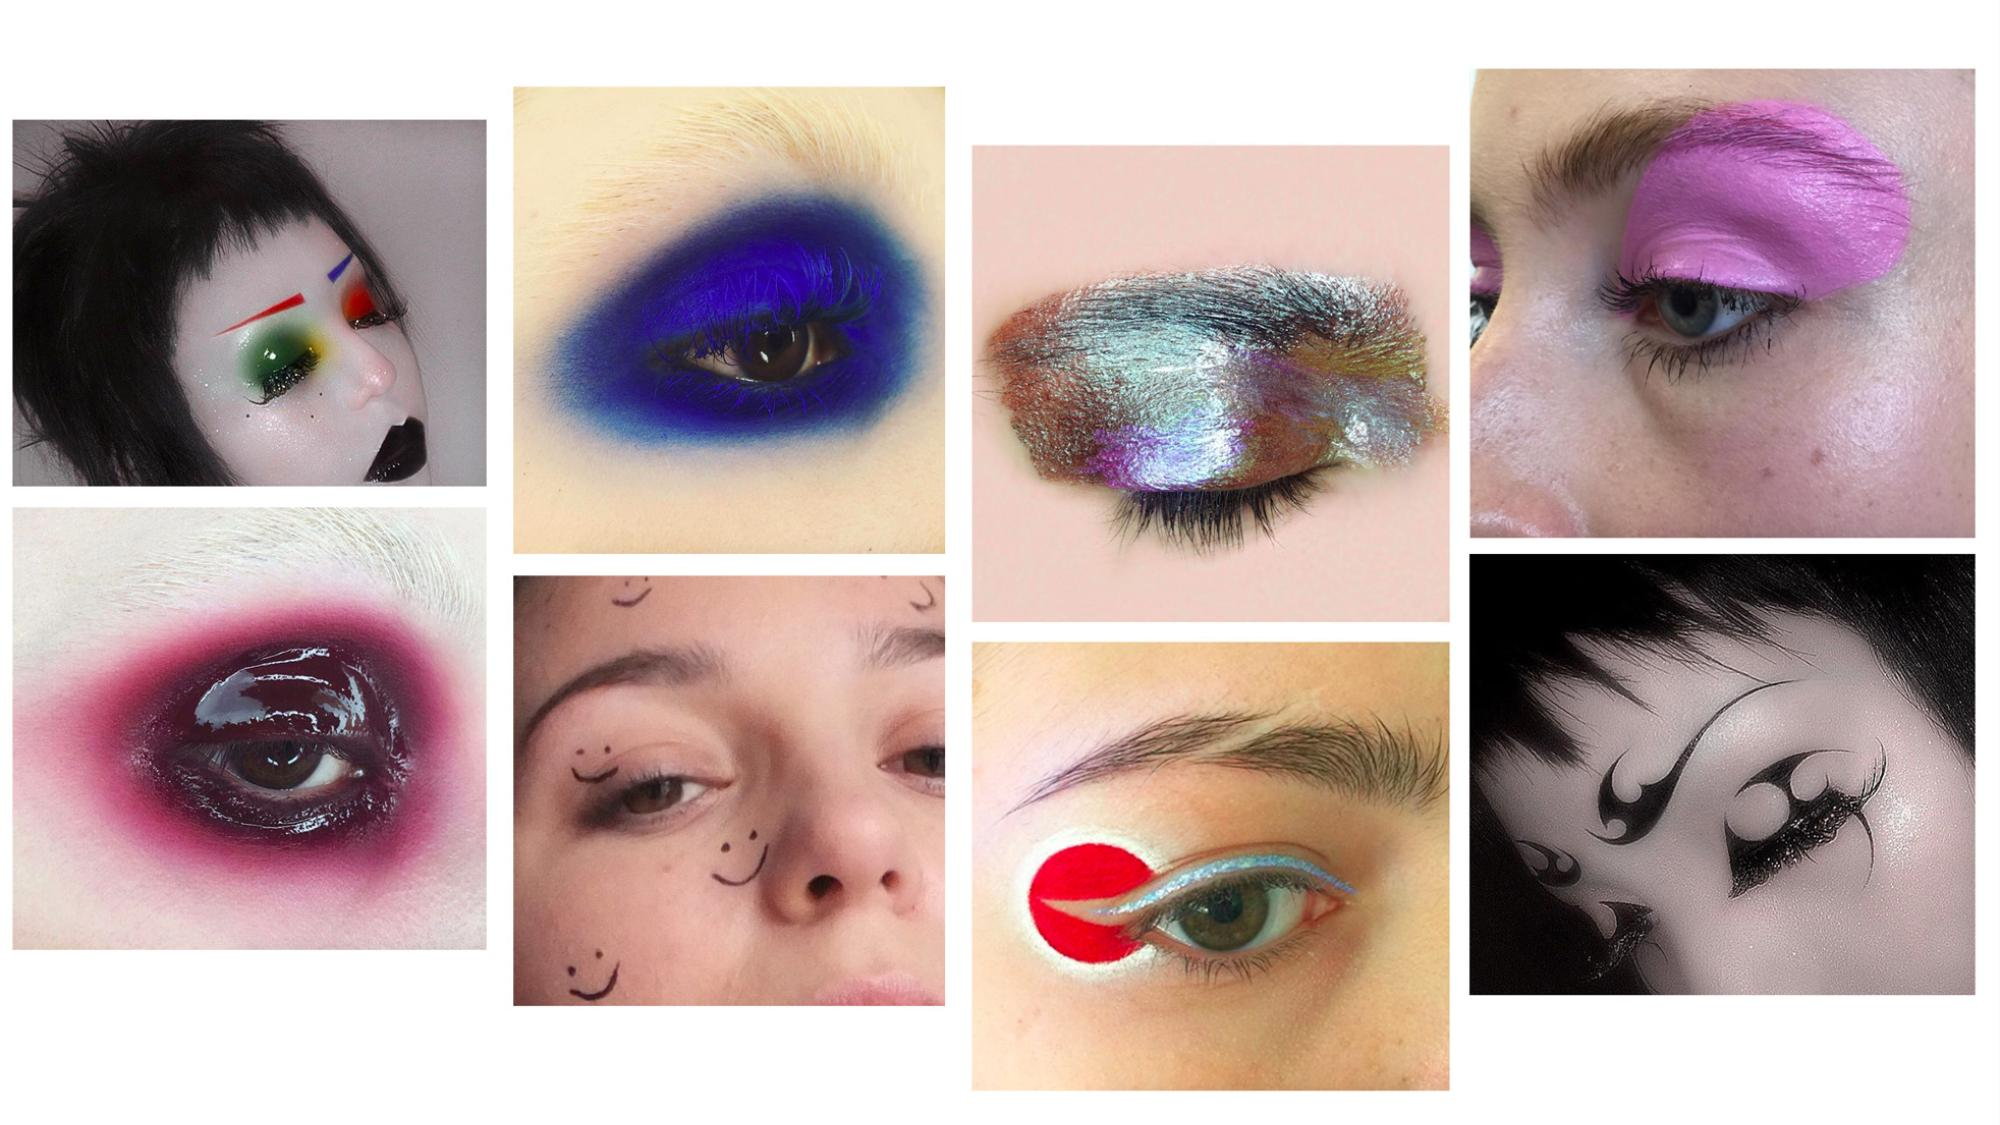 goths, glitter, glow: five makeup artists you'll actually be inspired by